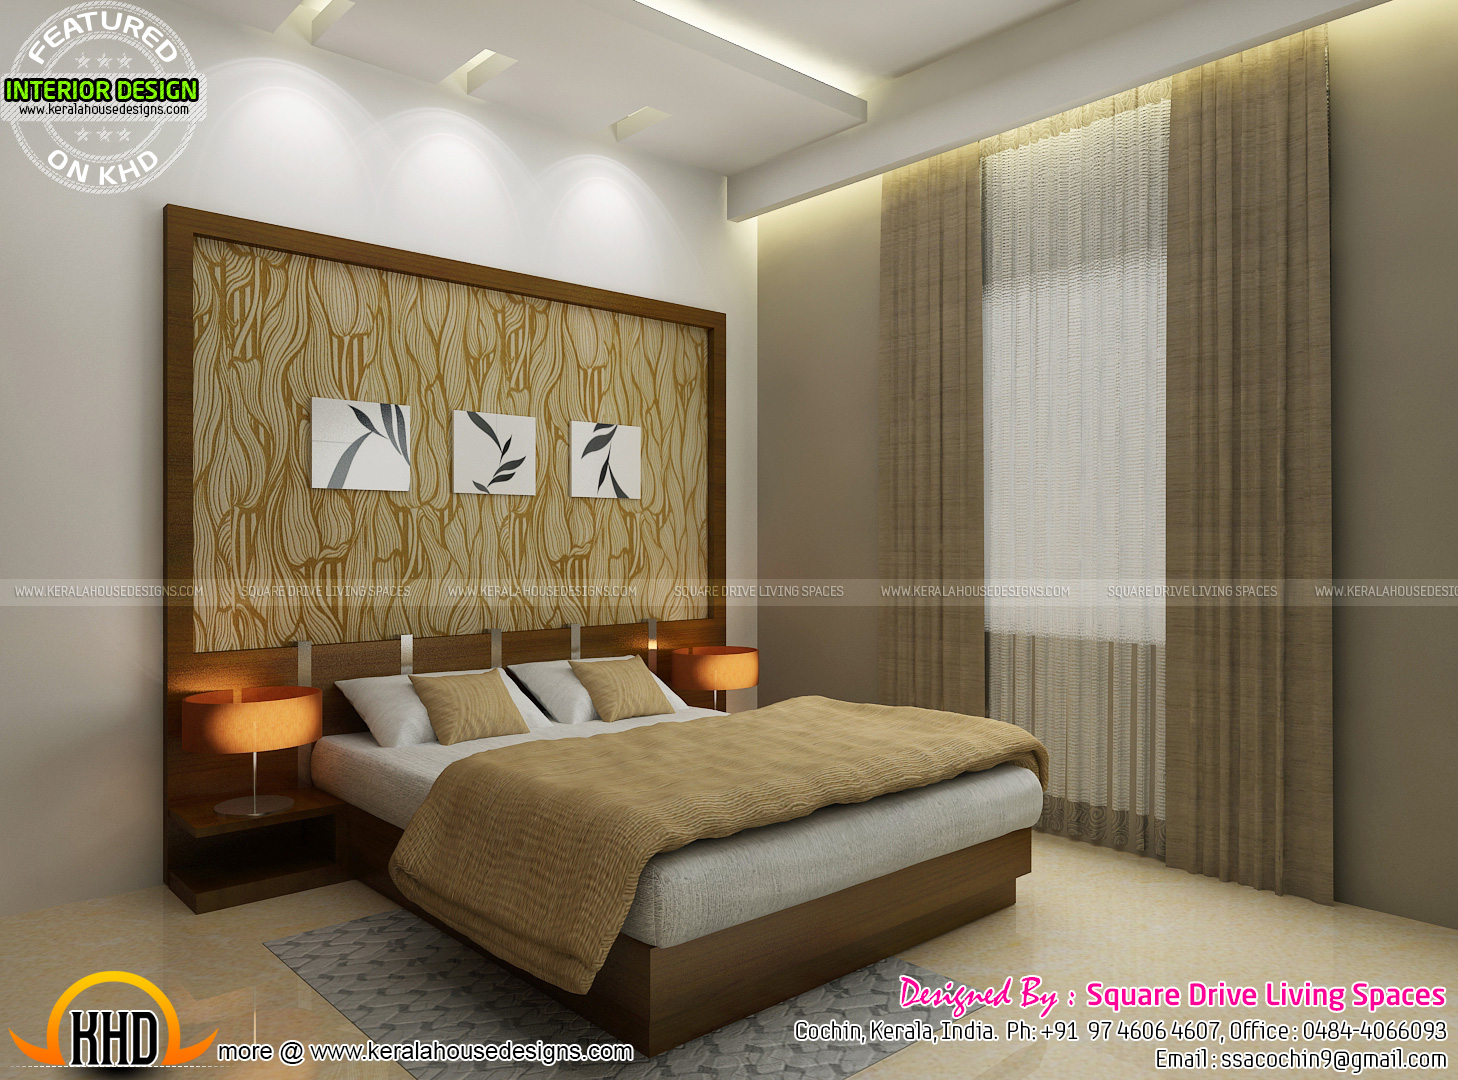 Interior designs of master bedroom living kitchen and for Design my bedroom layout